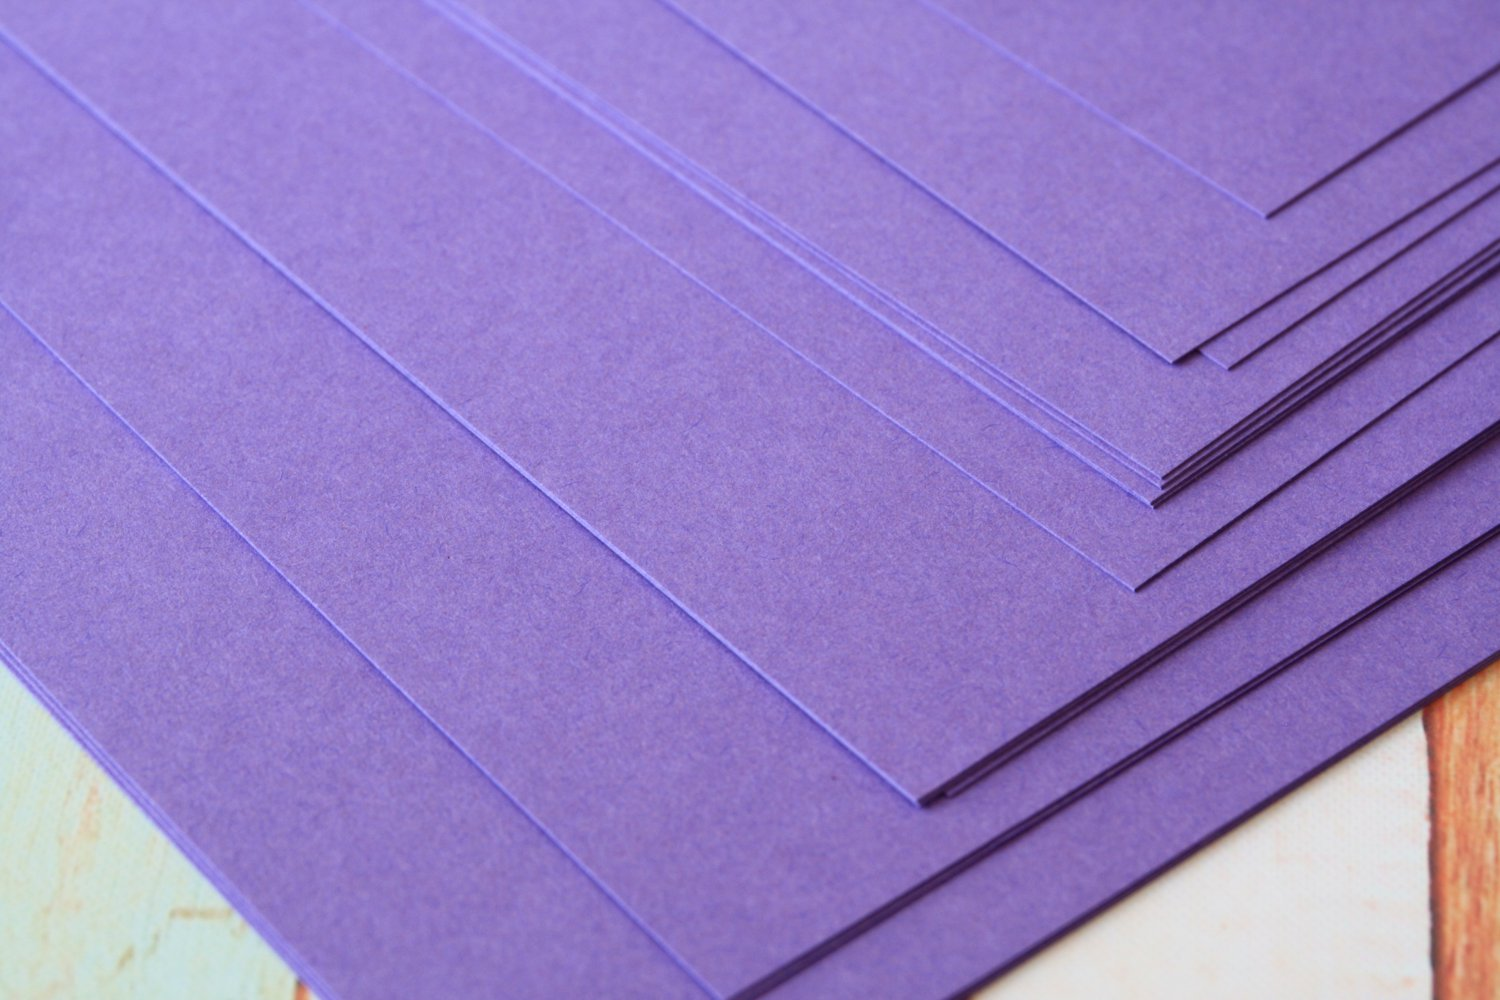 Orchid Violet cardstock 260gsm 95lbs cover A4 size